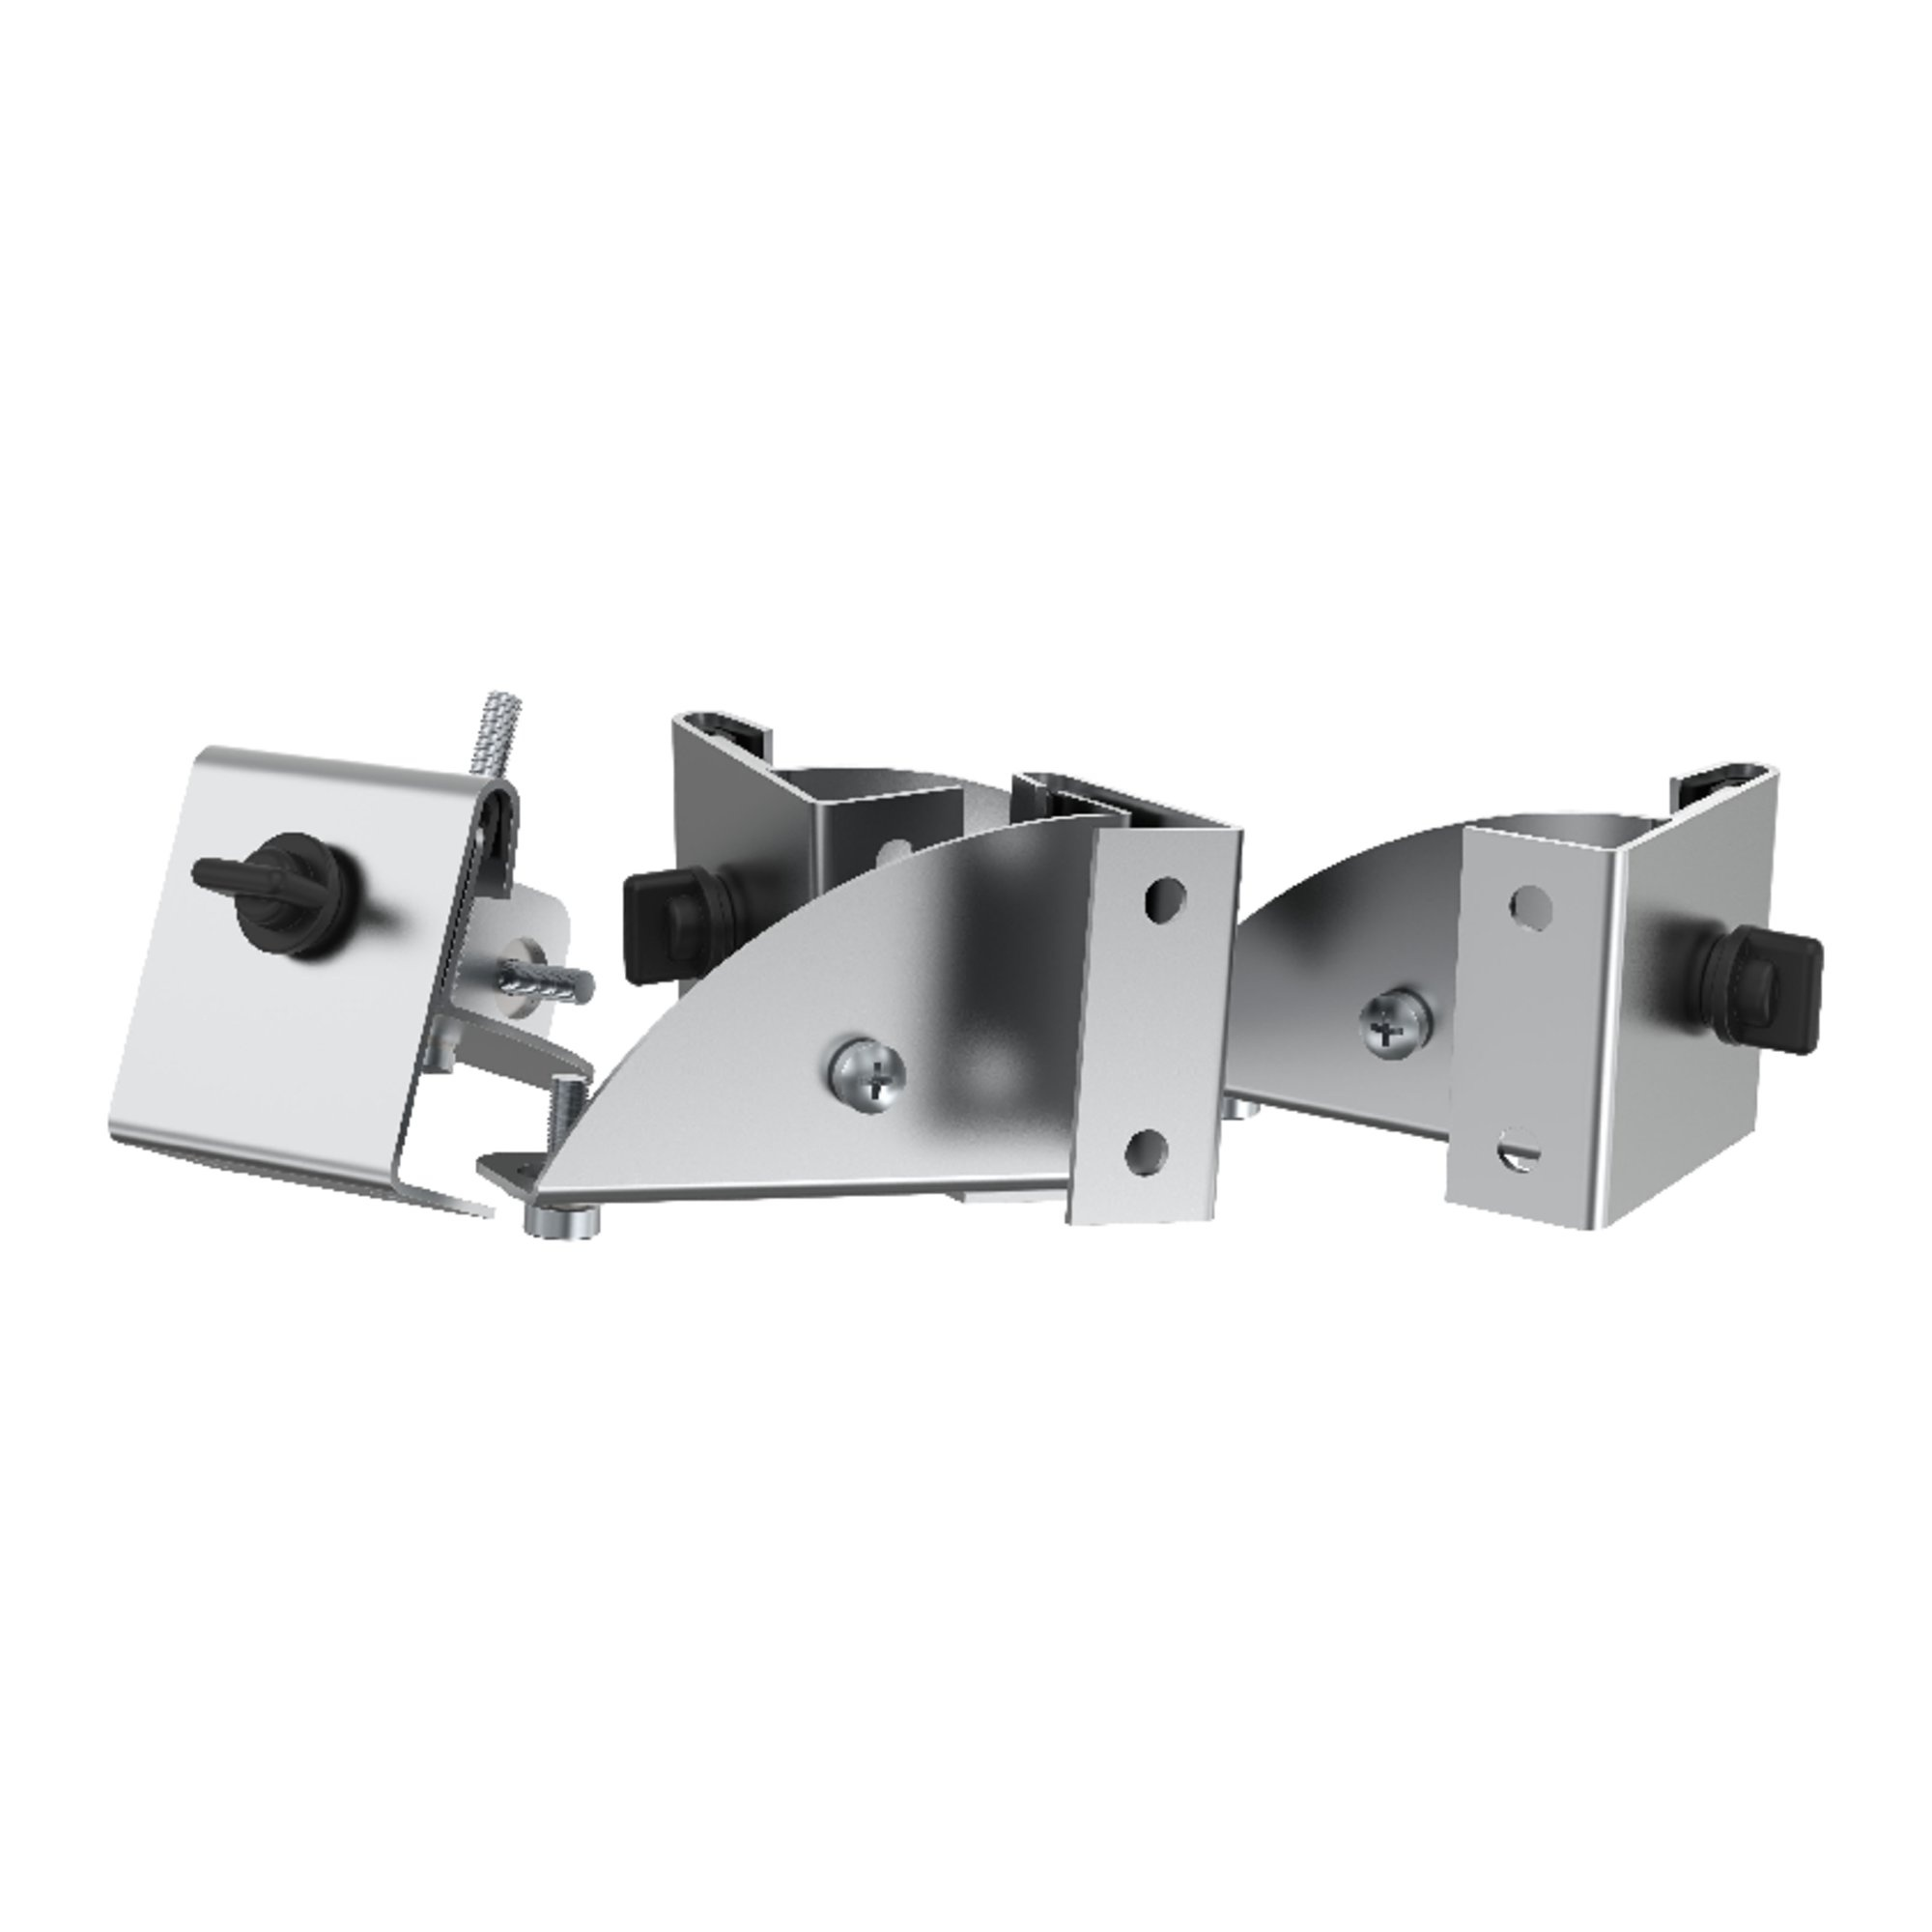 Ceiling mounting kit VTR 100/B - Other - Systemair